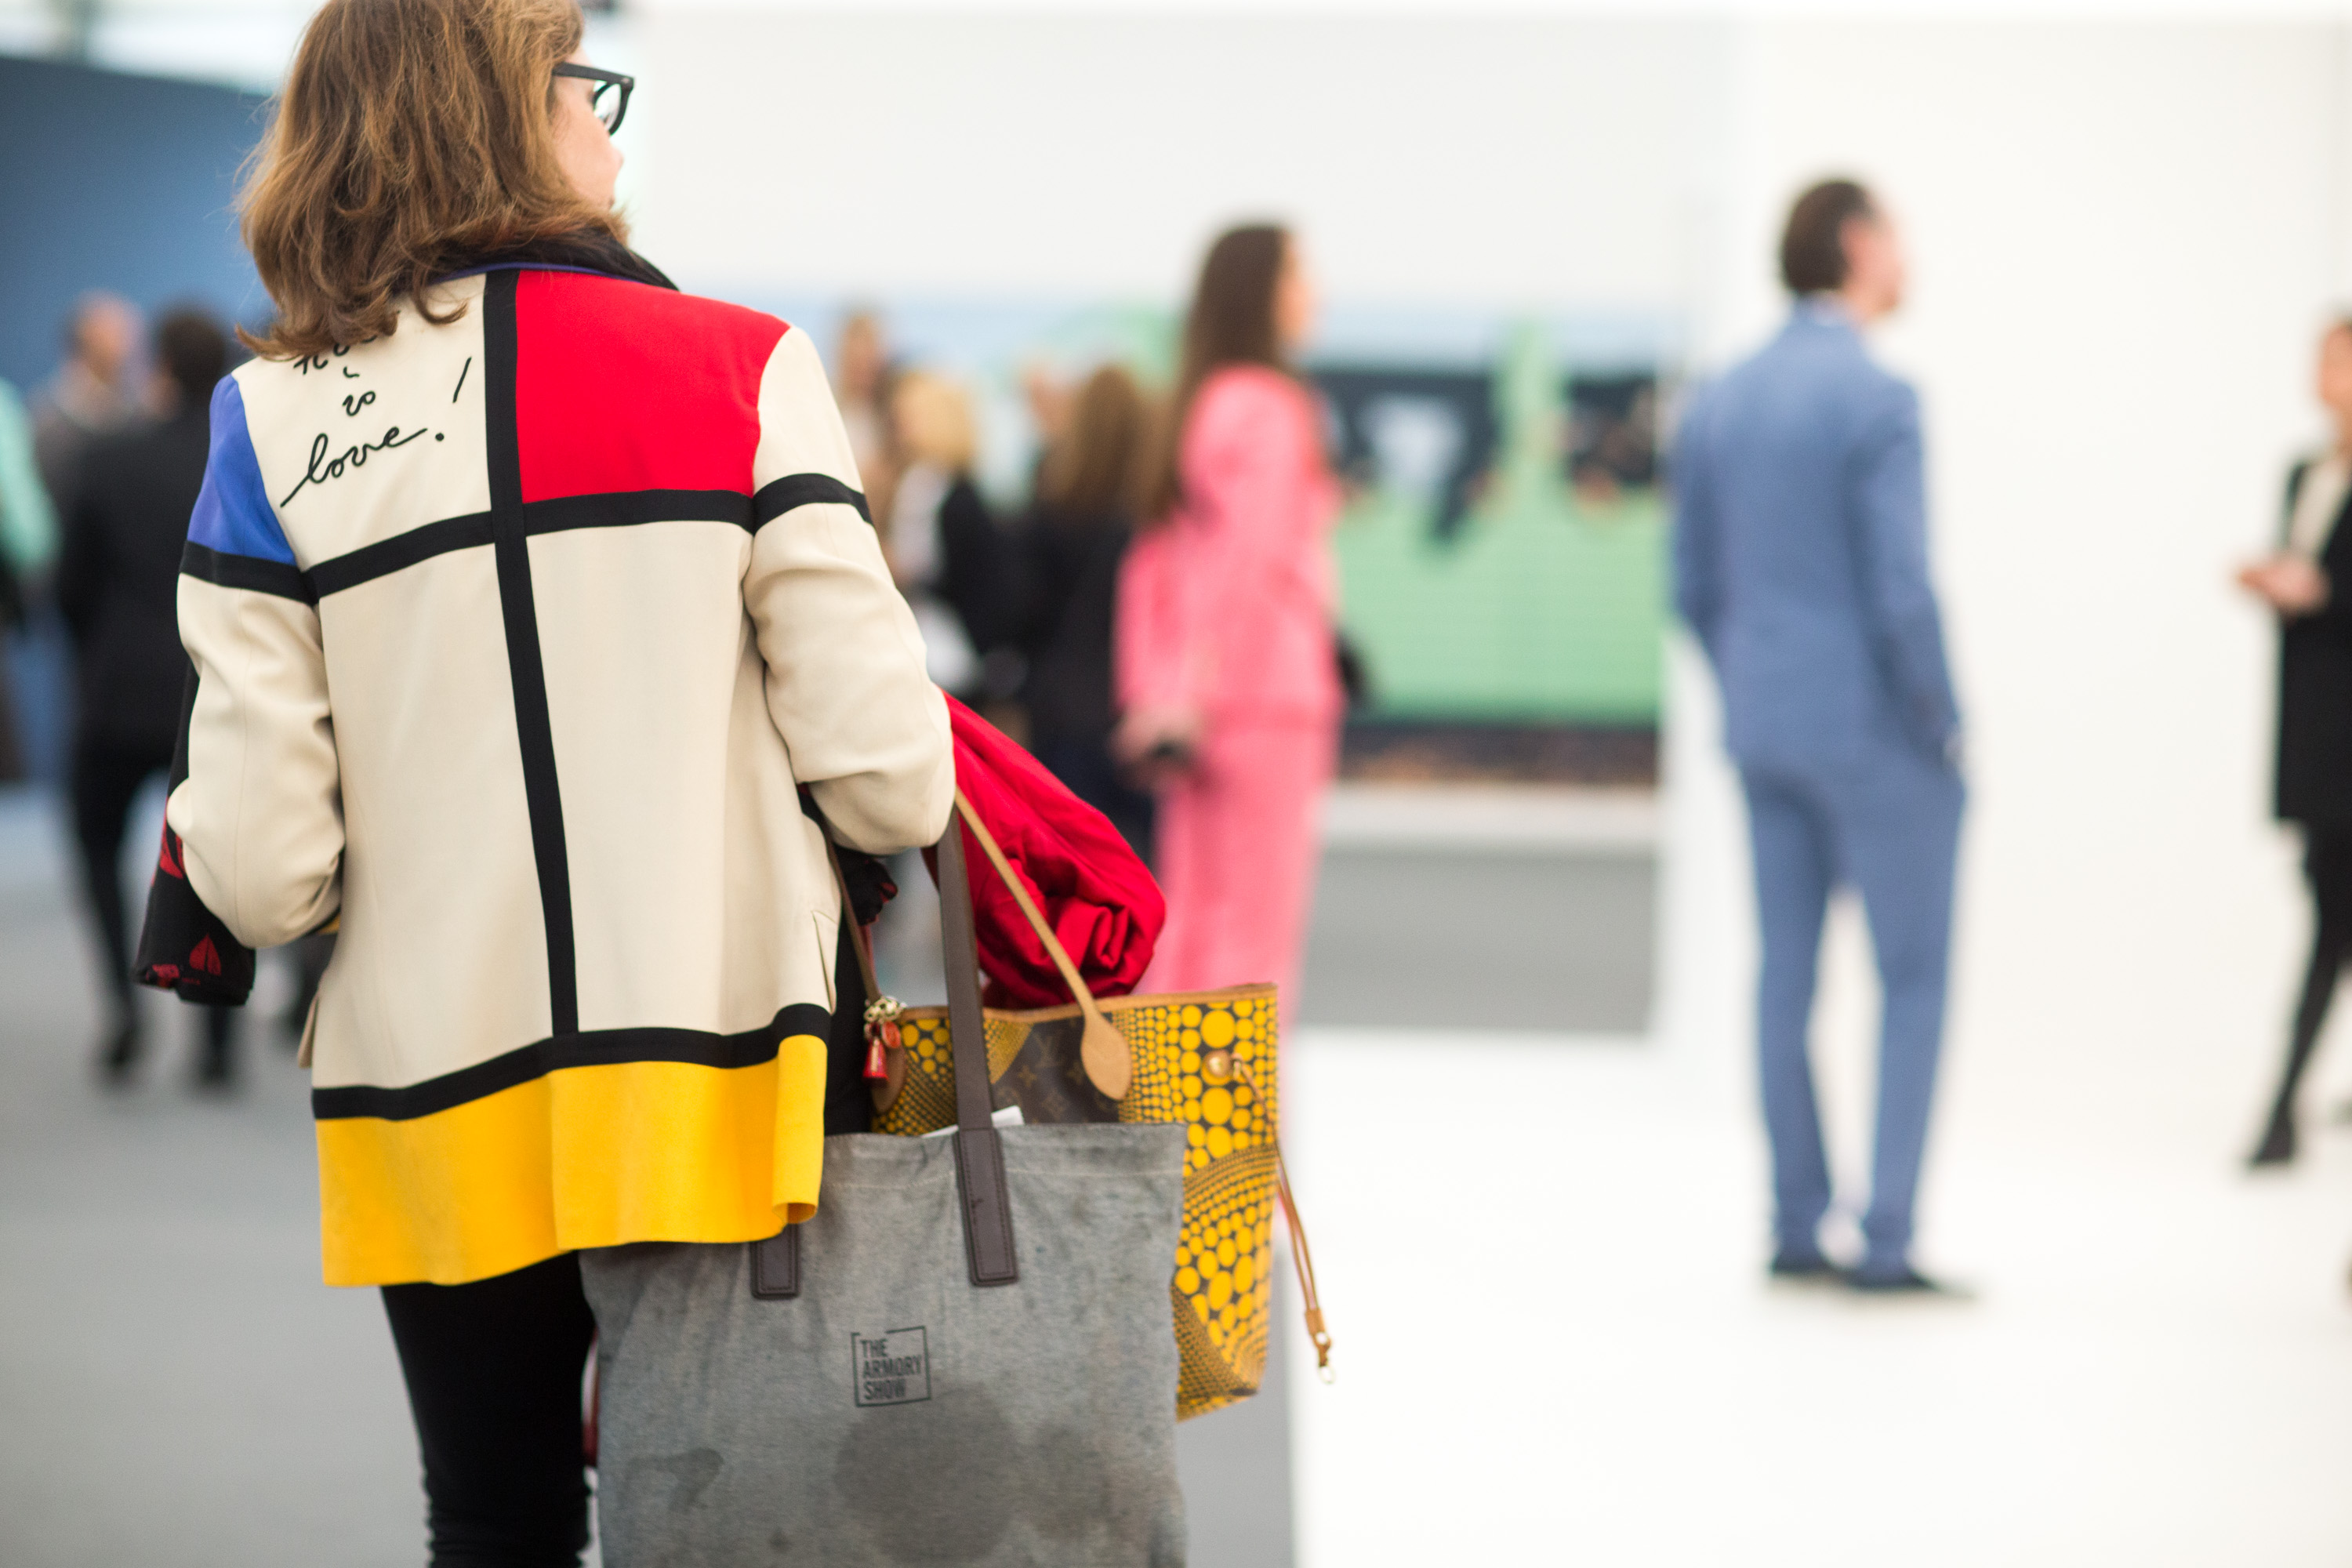 frieze new york, they are wearing